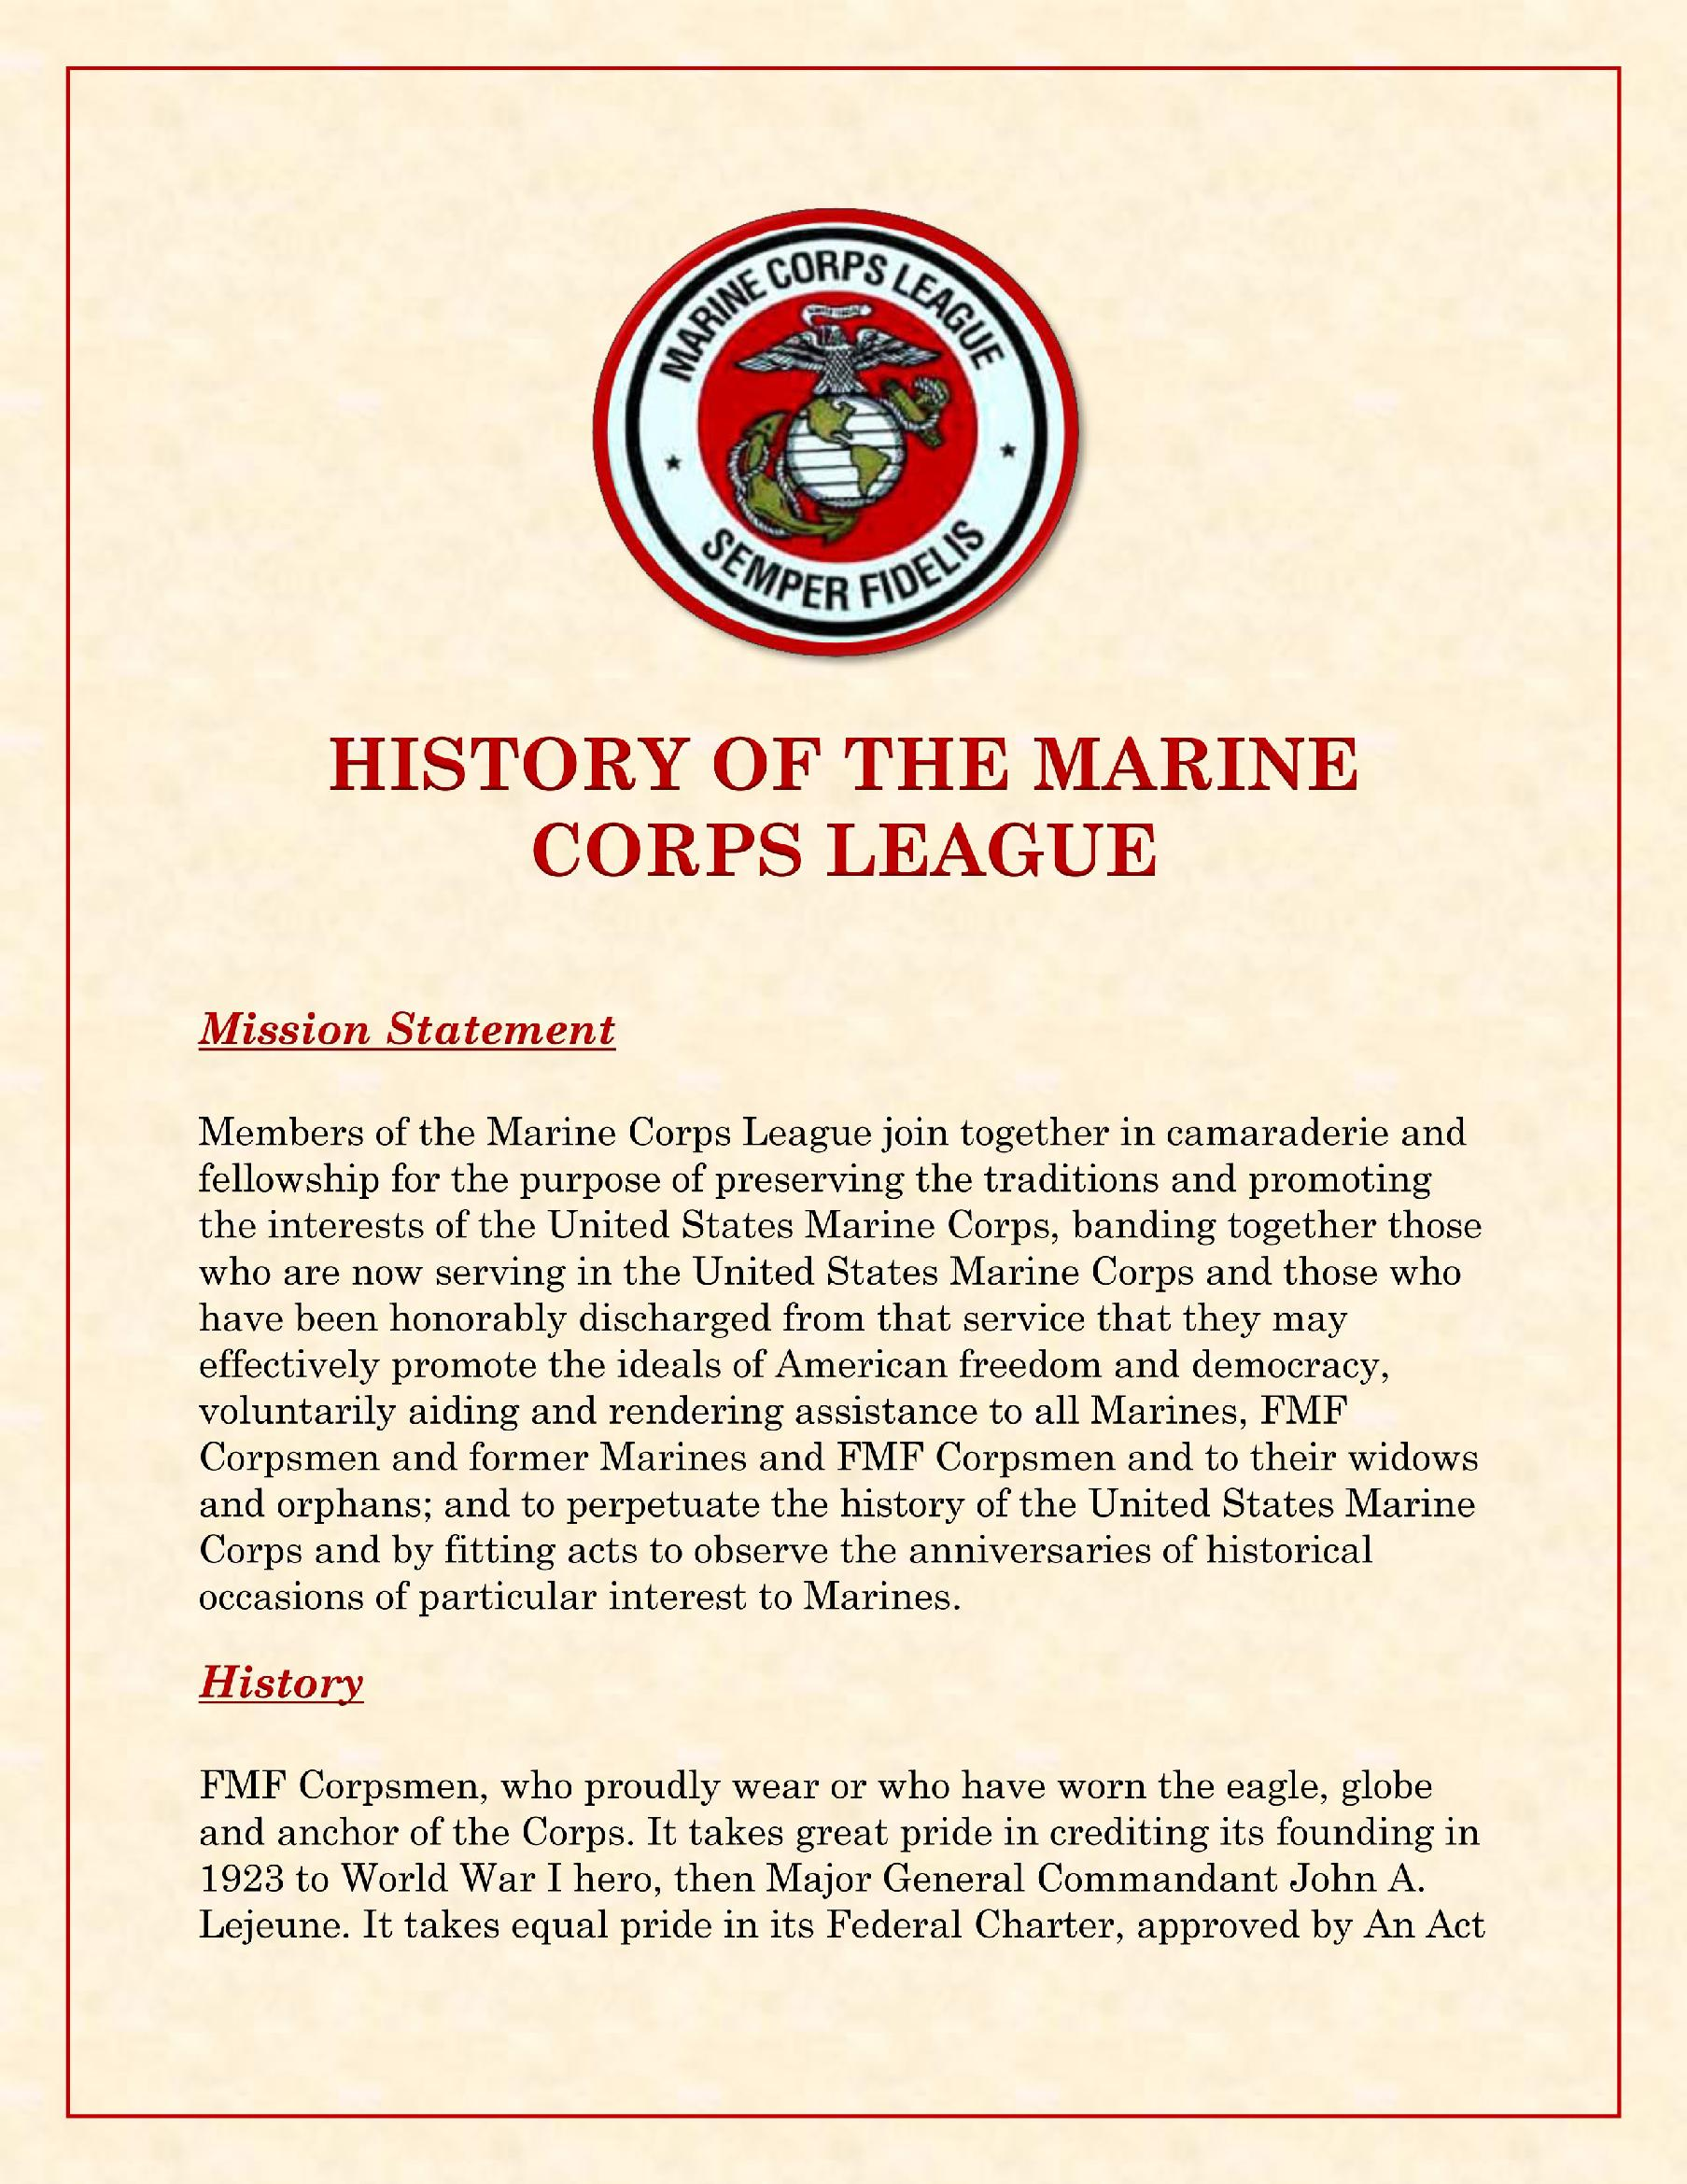 History of Marine Corps League